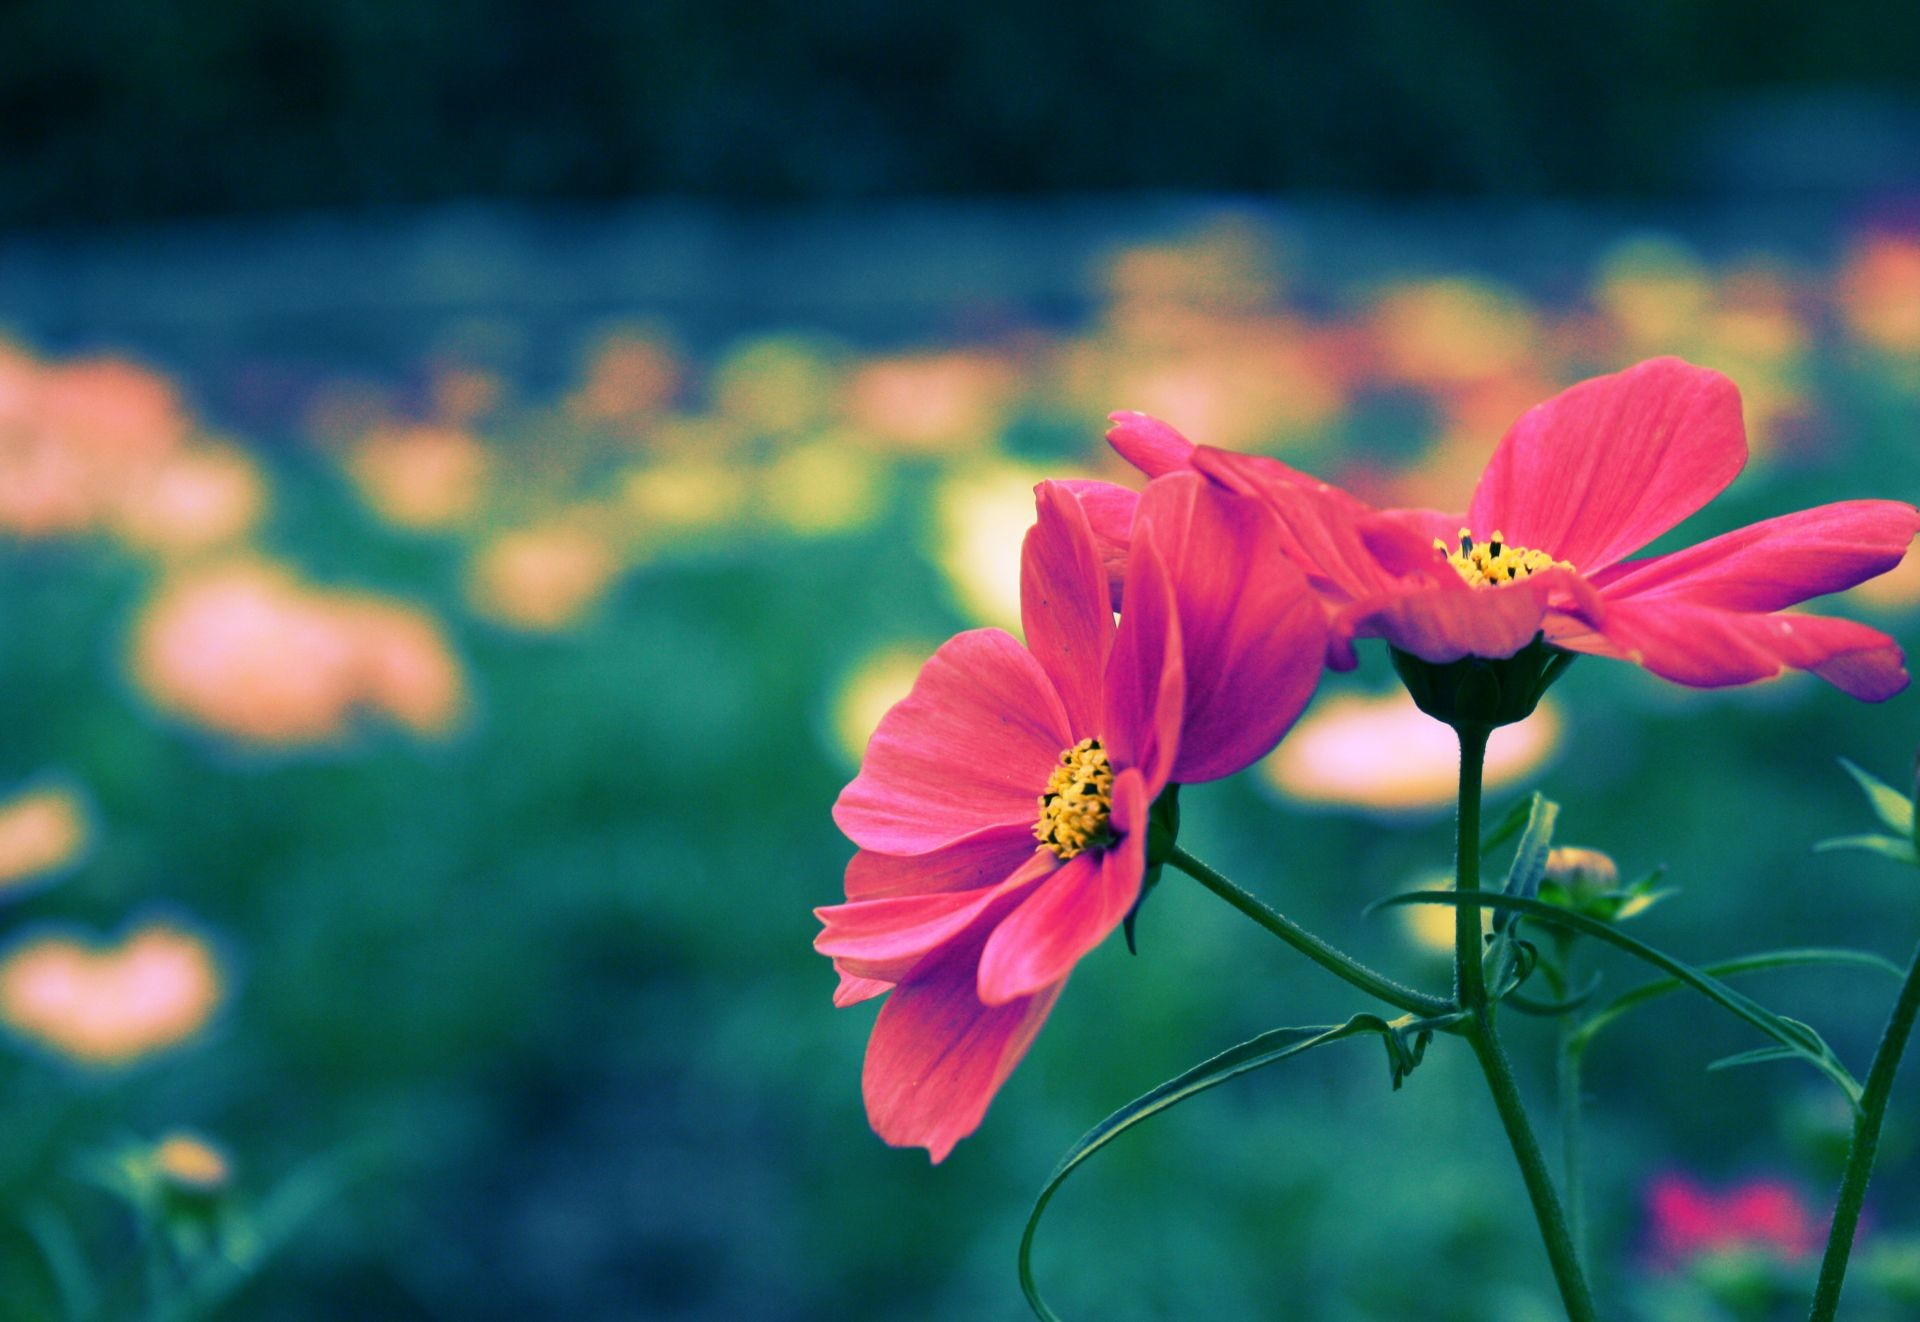 Pretty Flower Background (52+ images)